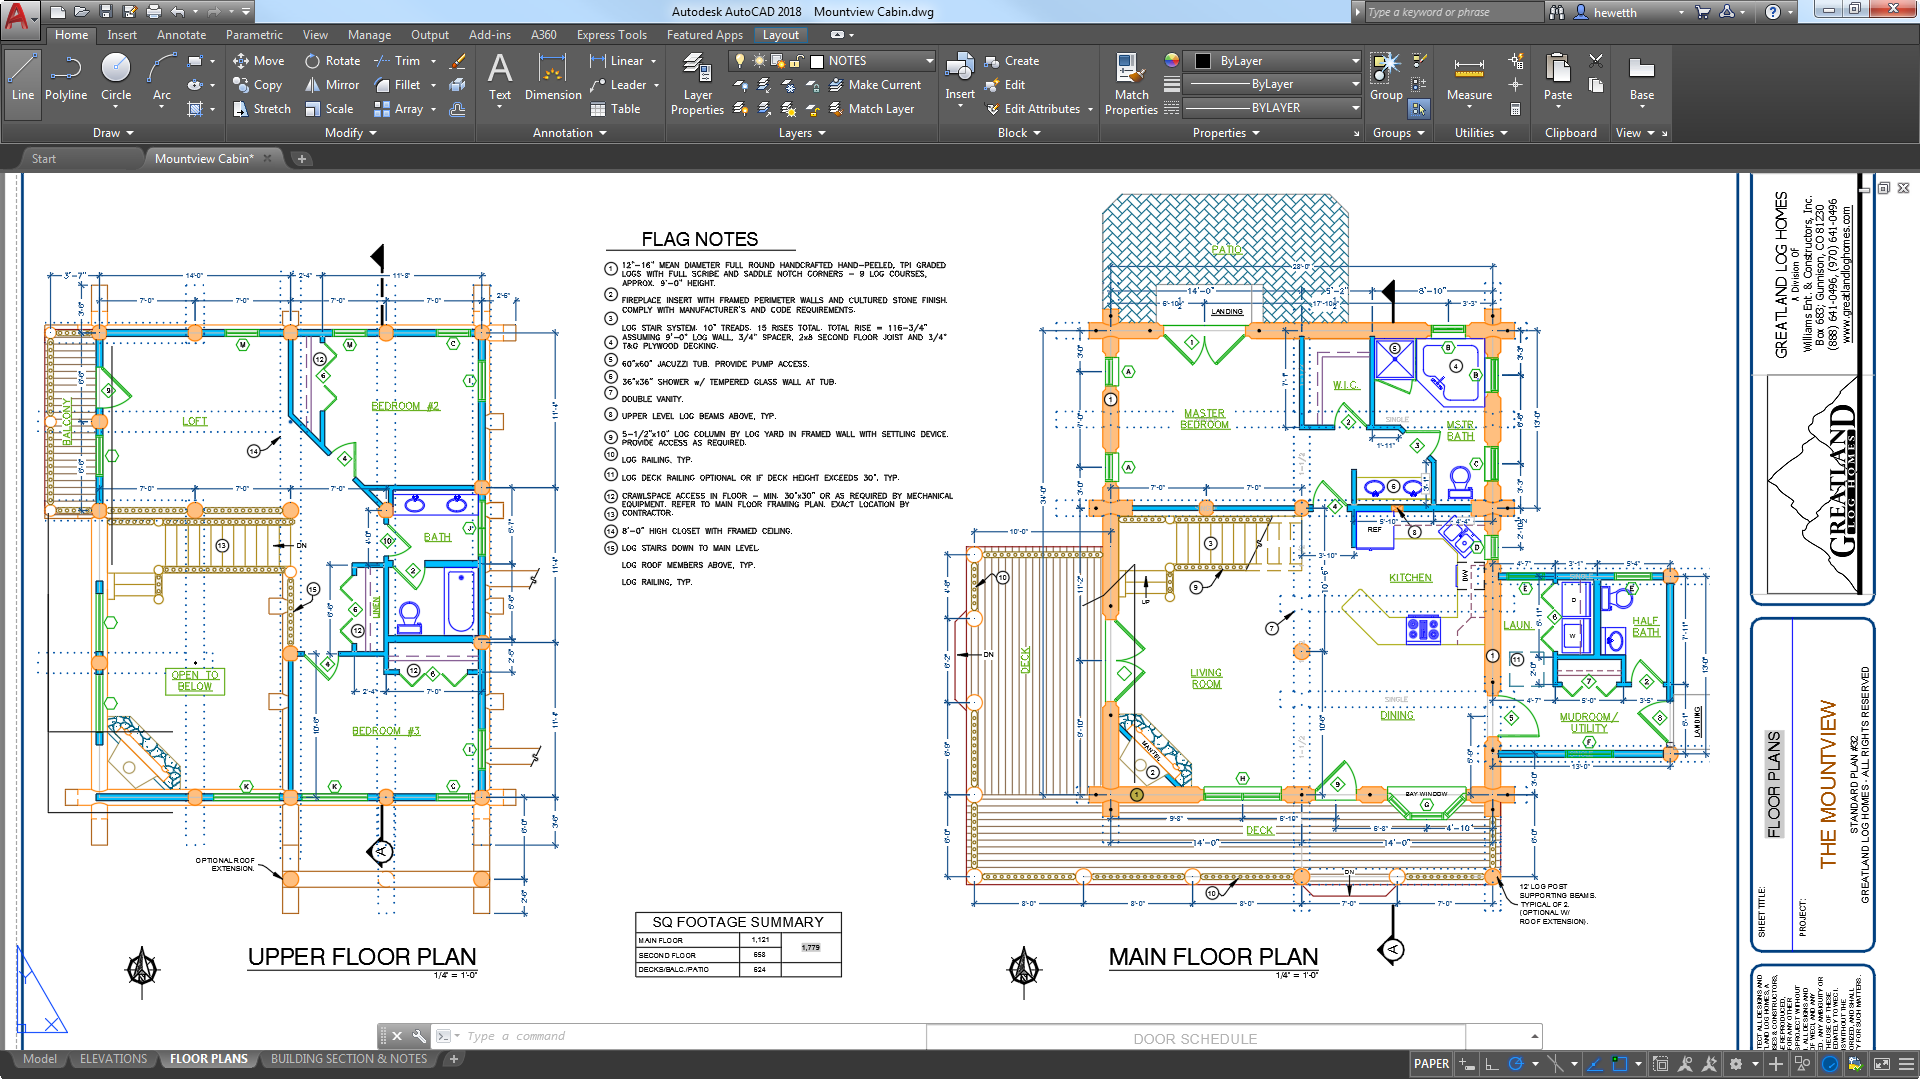 produce 2d documentation and drawings with a comprehensive set of drawing editing and annotation tools